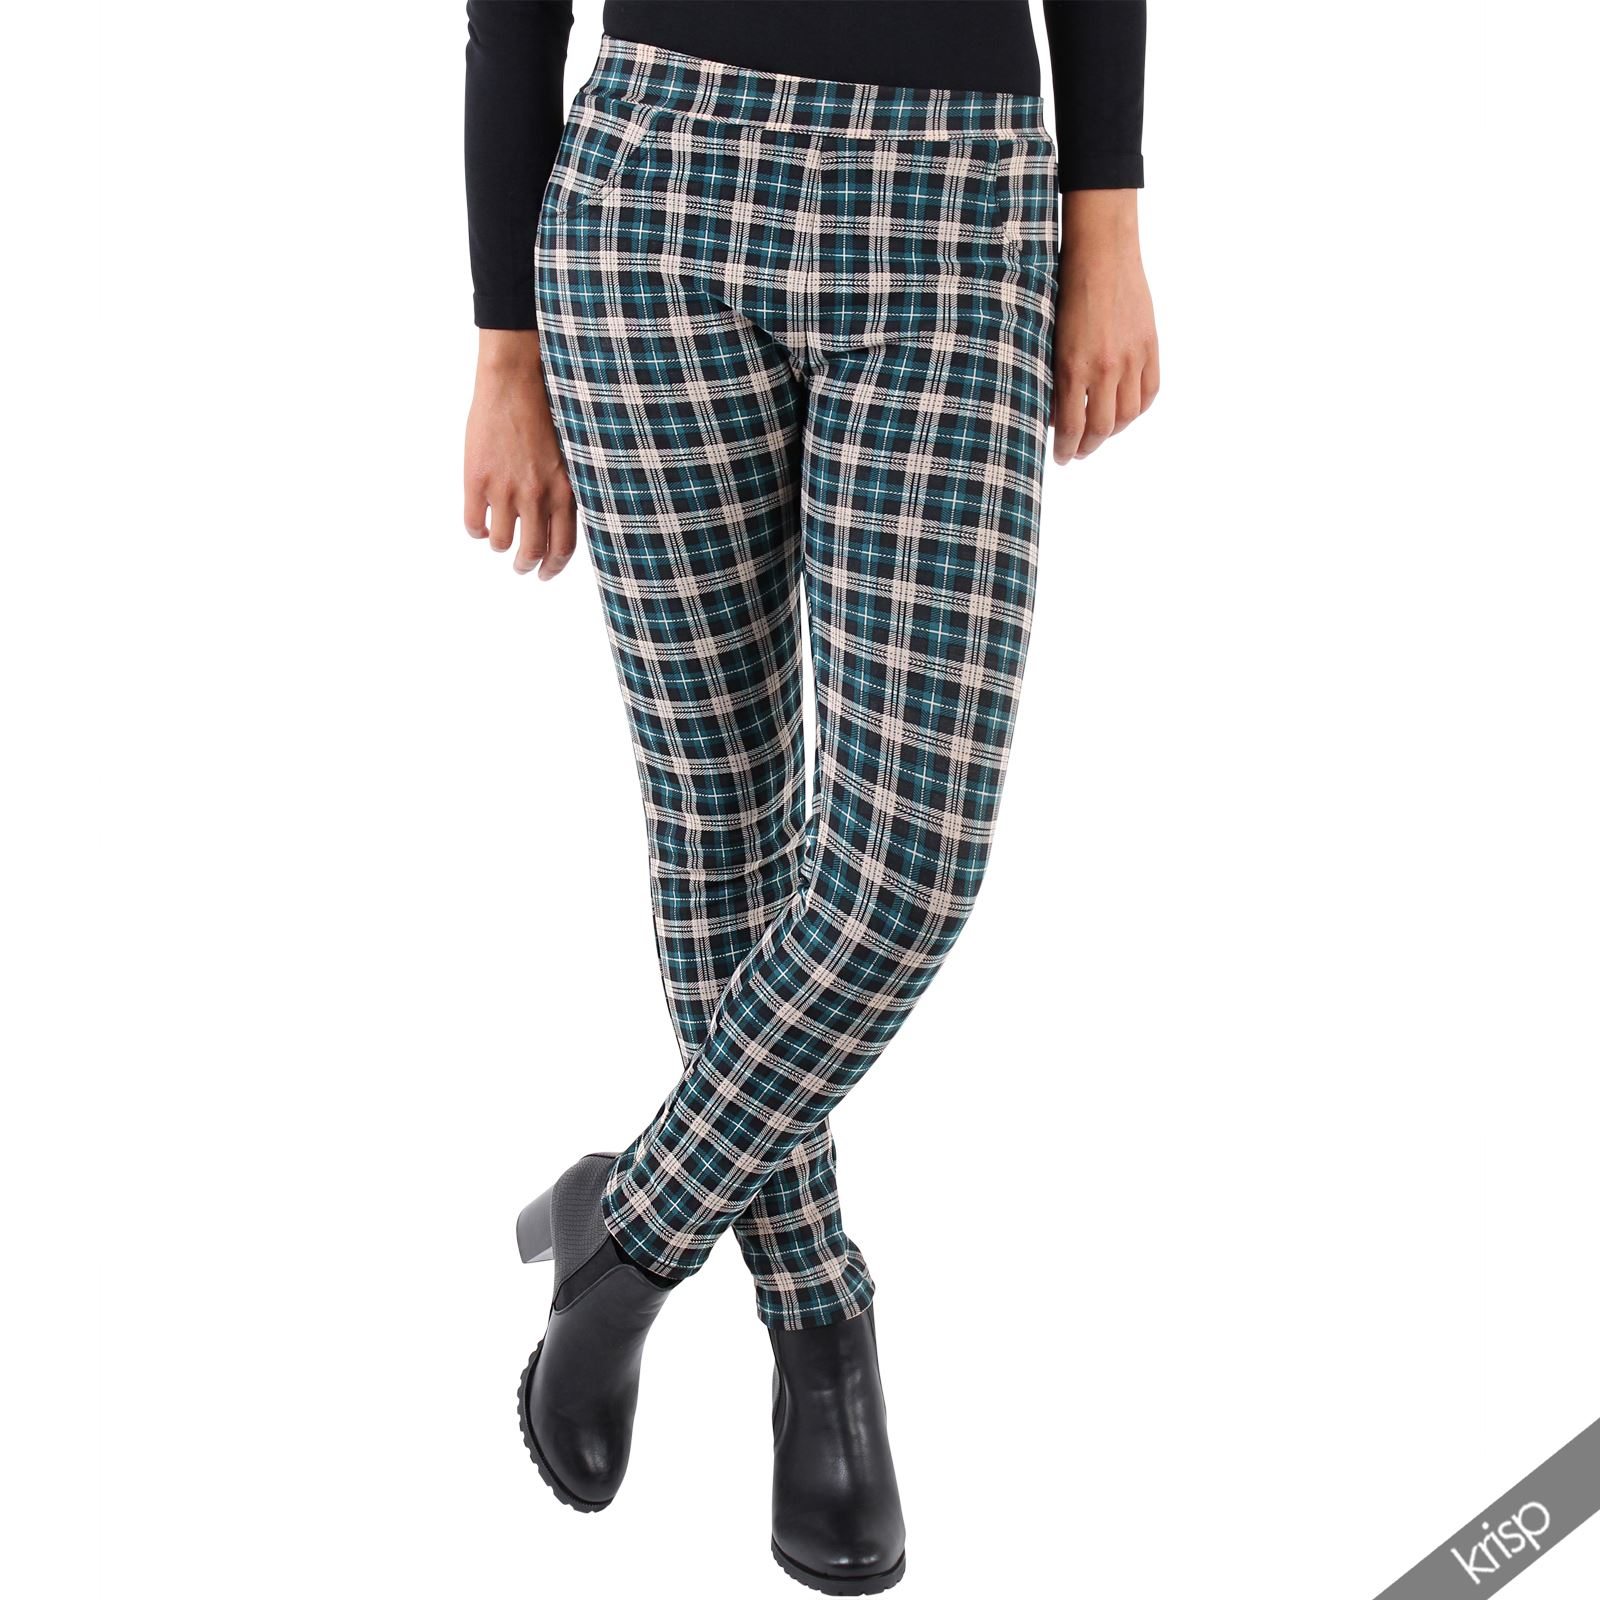 femmes pantalon fuseau leggings tartan carreaux doubl fourrure thermique ebay. Black Bedroom Furniture Sets. Home Design Ideas